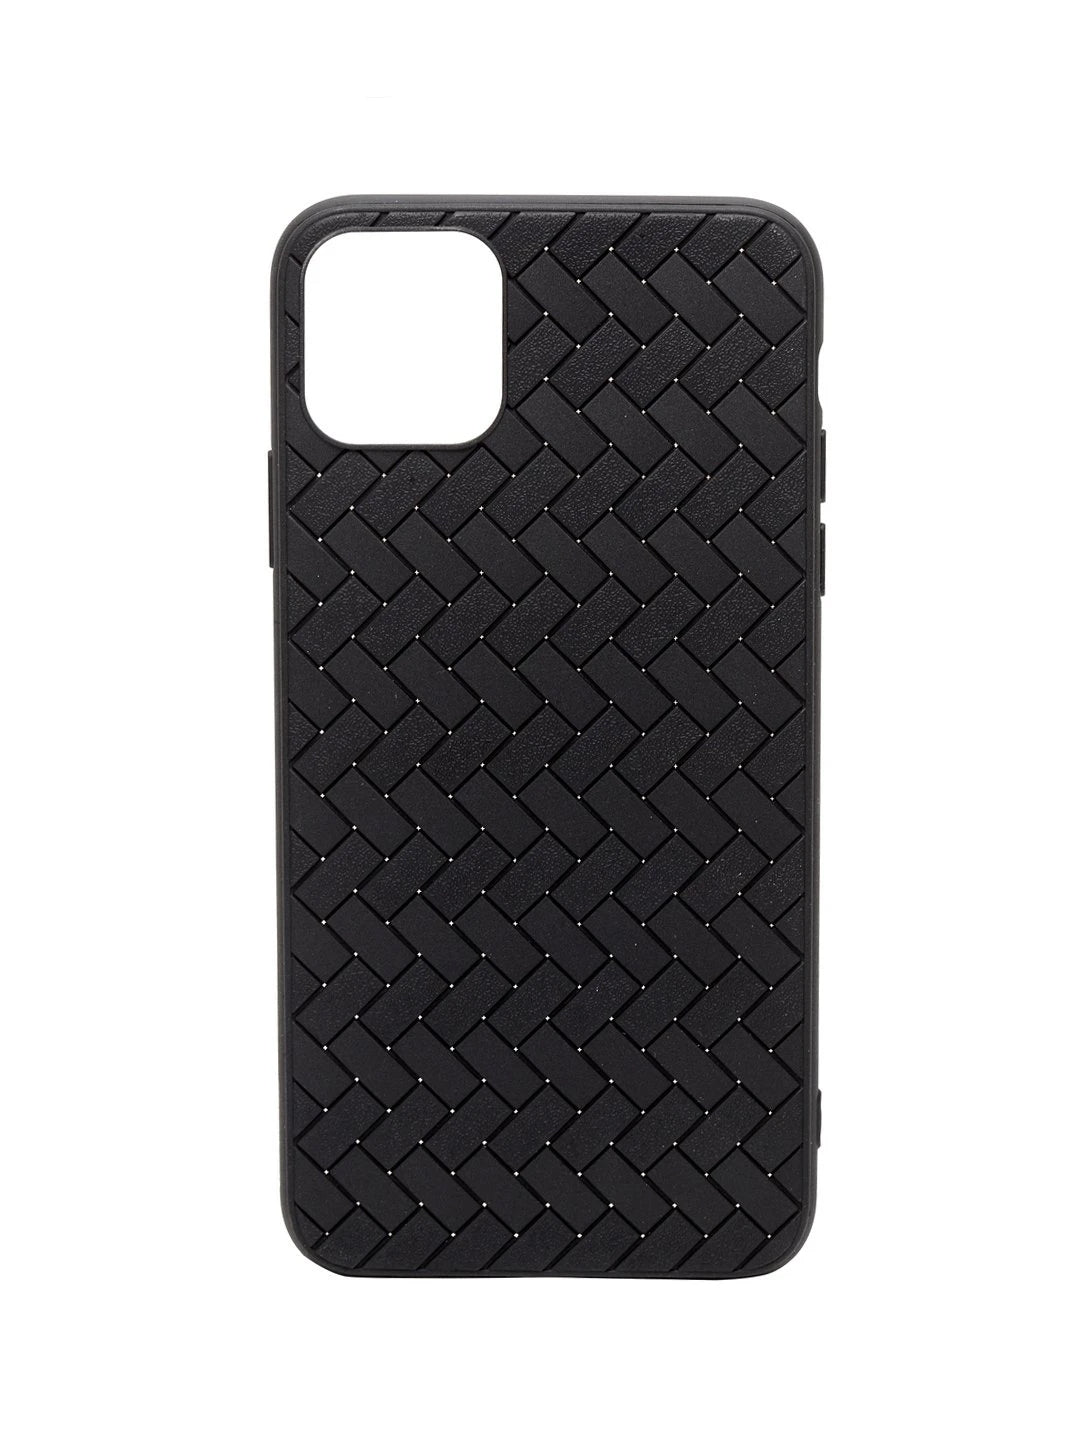 Black Mobile Case For iPhone 11 / 11 Pro / 11 Pro Max